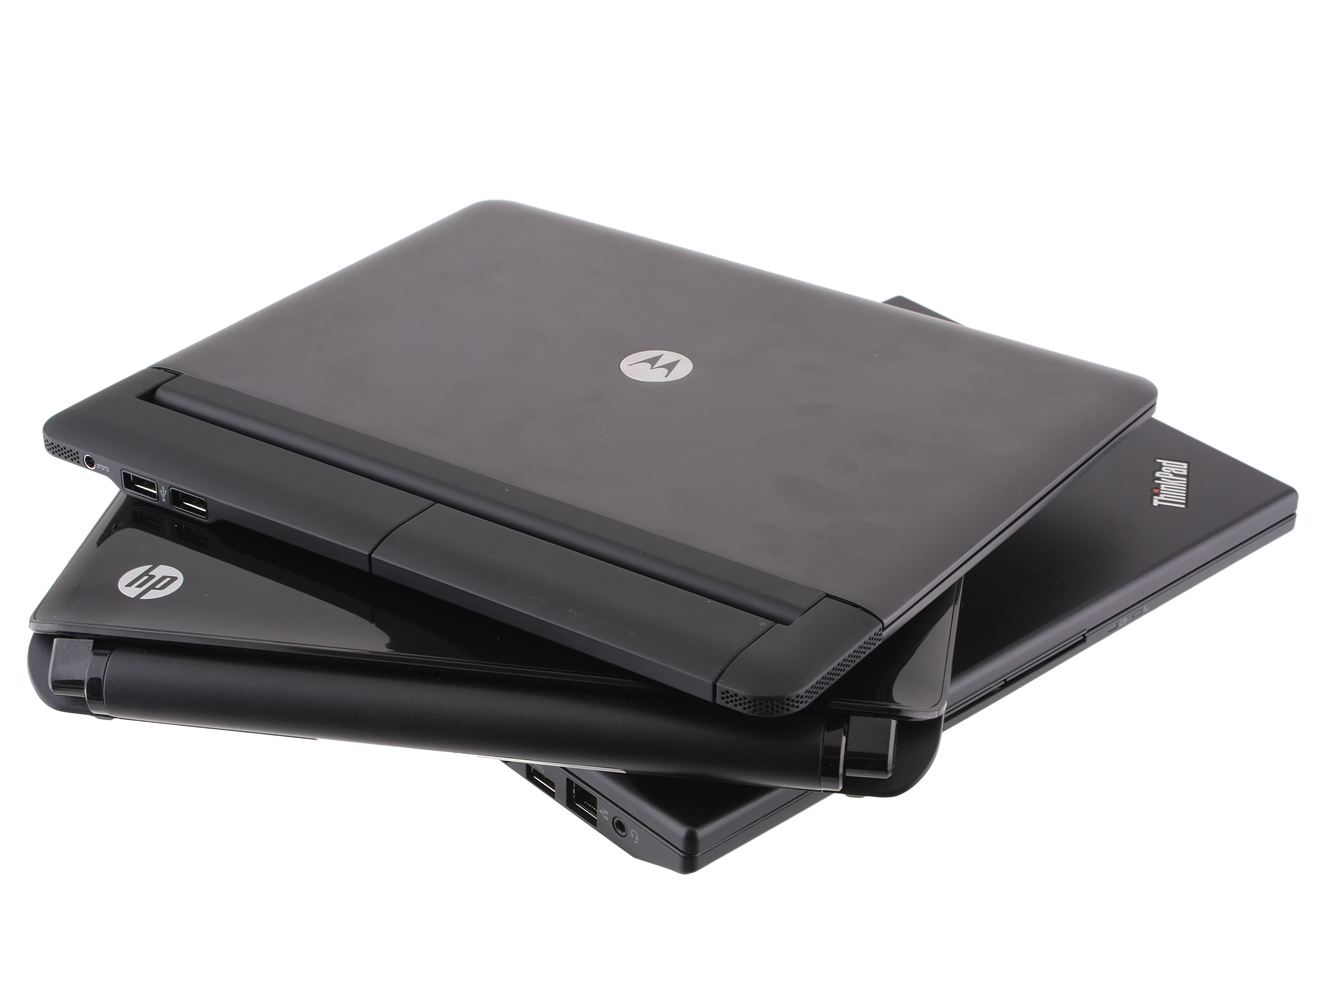 The Motorola Atrix 4G laptop dock, stacked with a ThinkPad X120e and an HP Mini 1103.